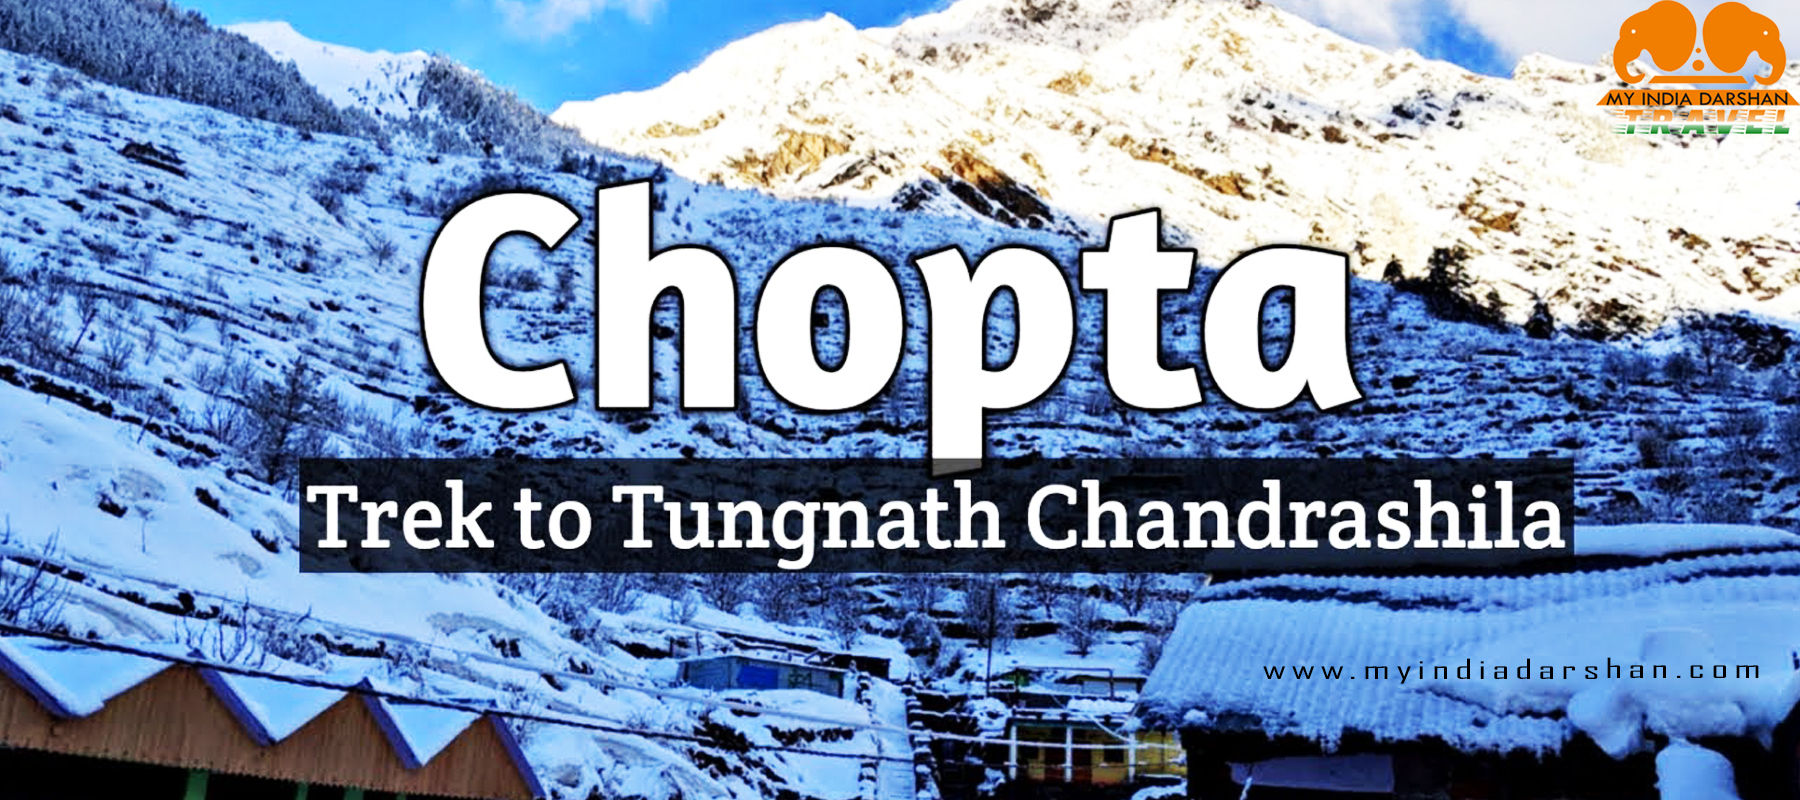 -chopta tungnath tour3 | MY INDIA DARSHAN